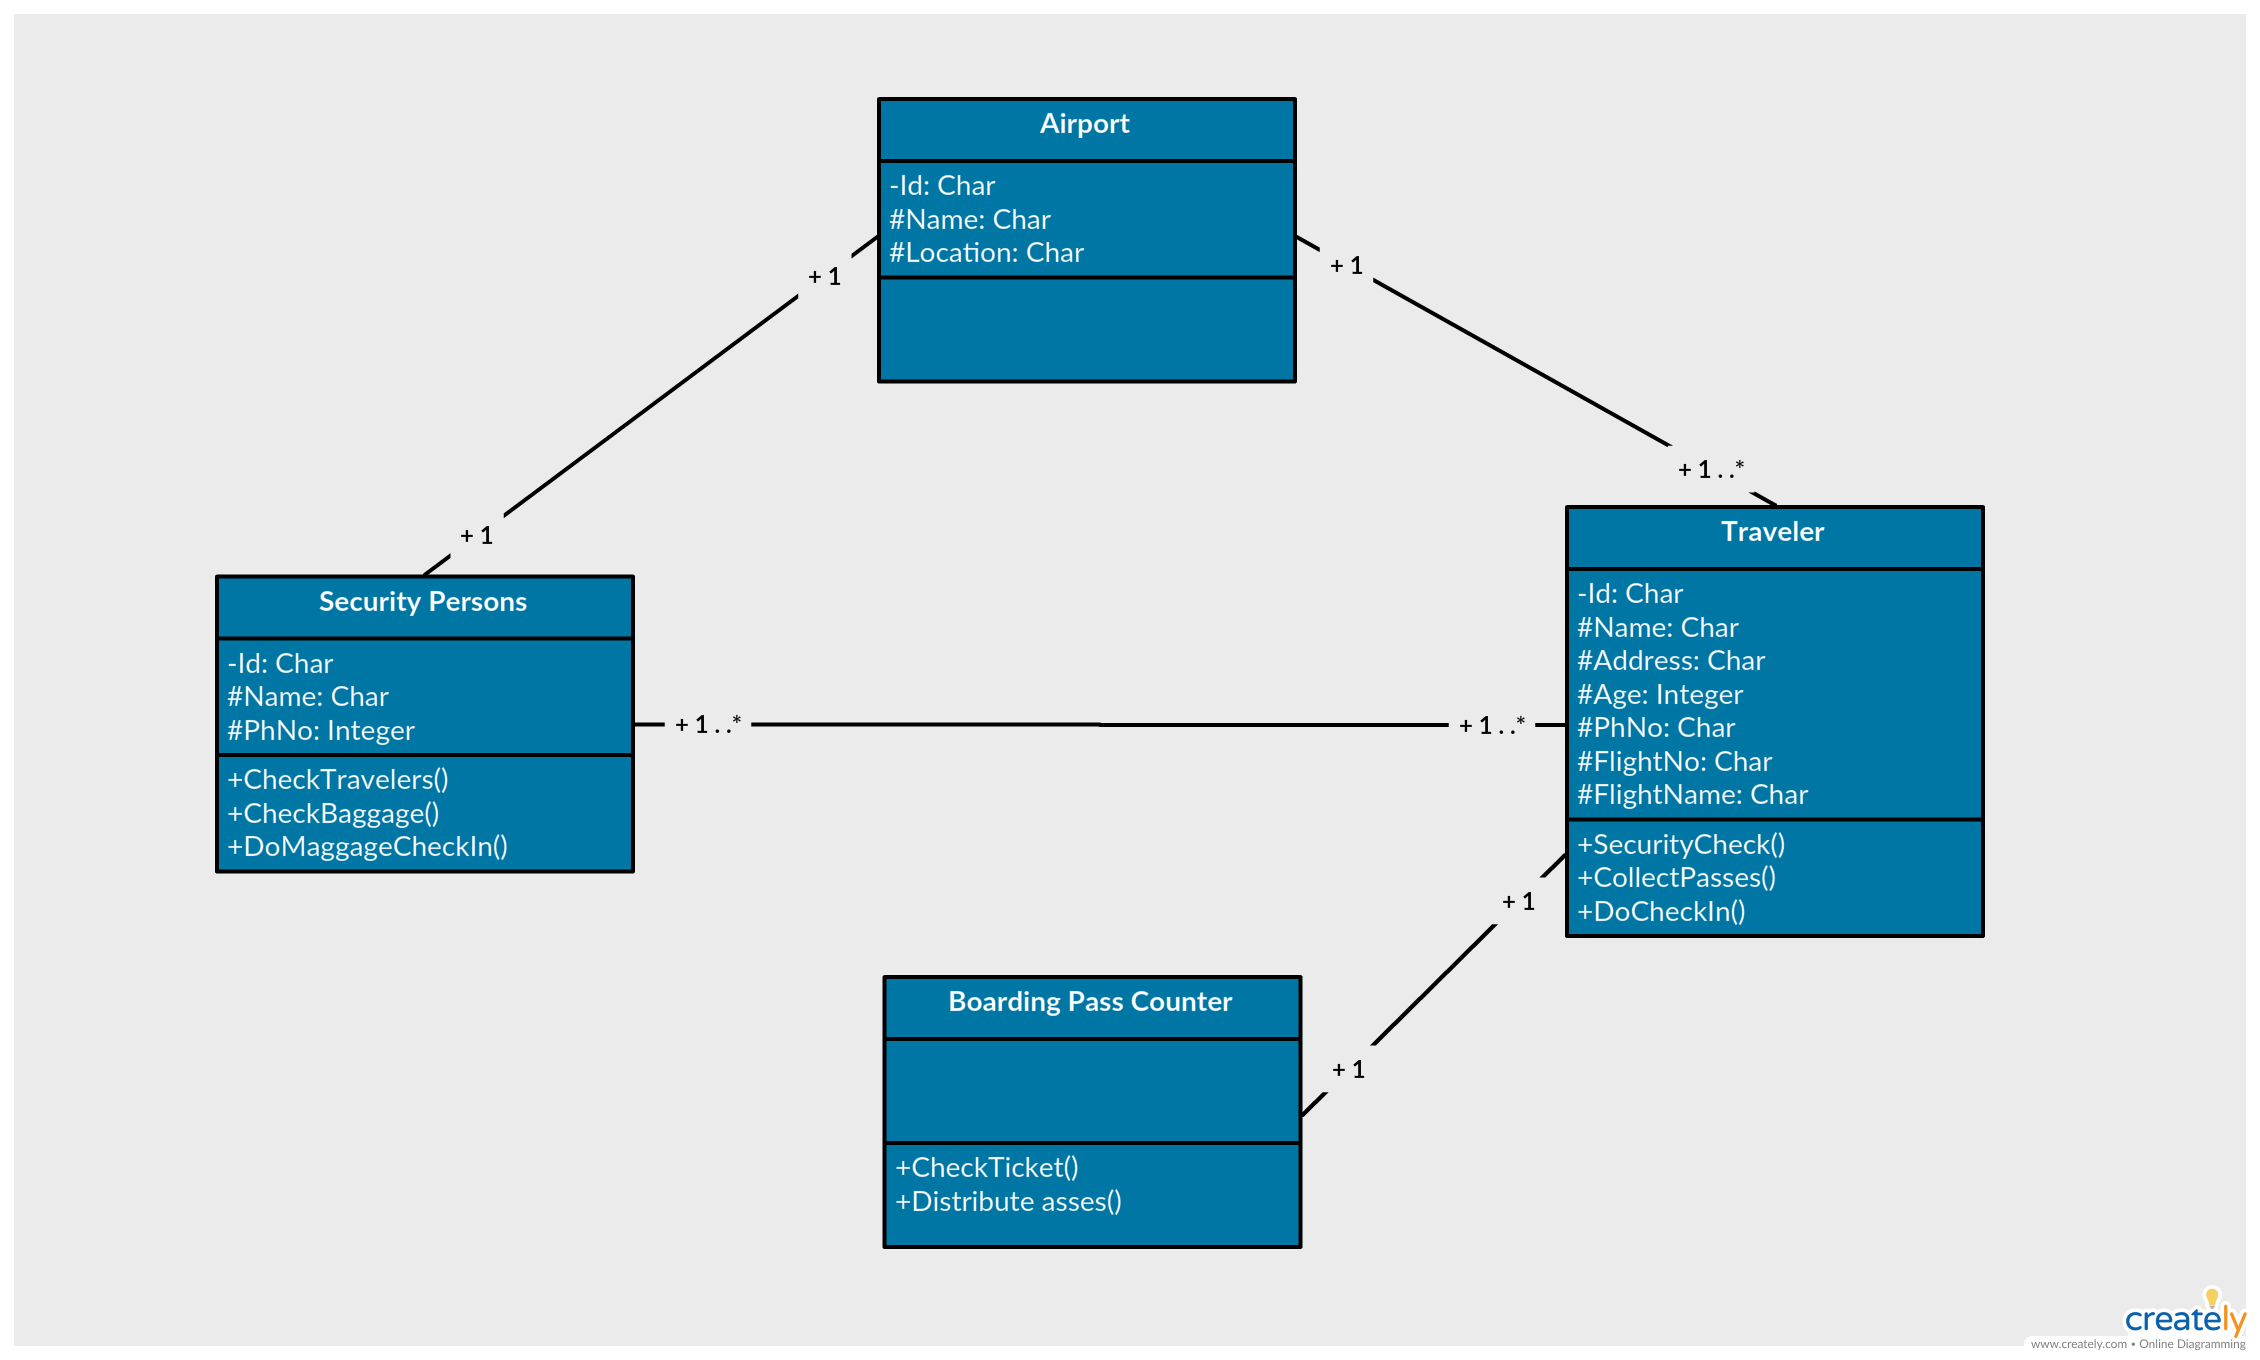 uml class diagram example airport security and checkin system class diagram template to modify as per your requirement click on the image and use this  [ 2260 x 1360 Pixel ]